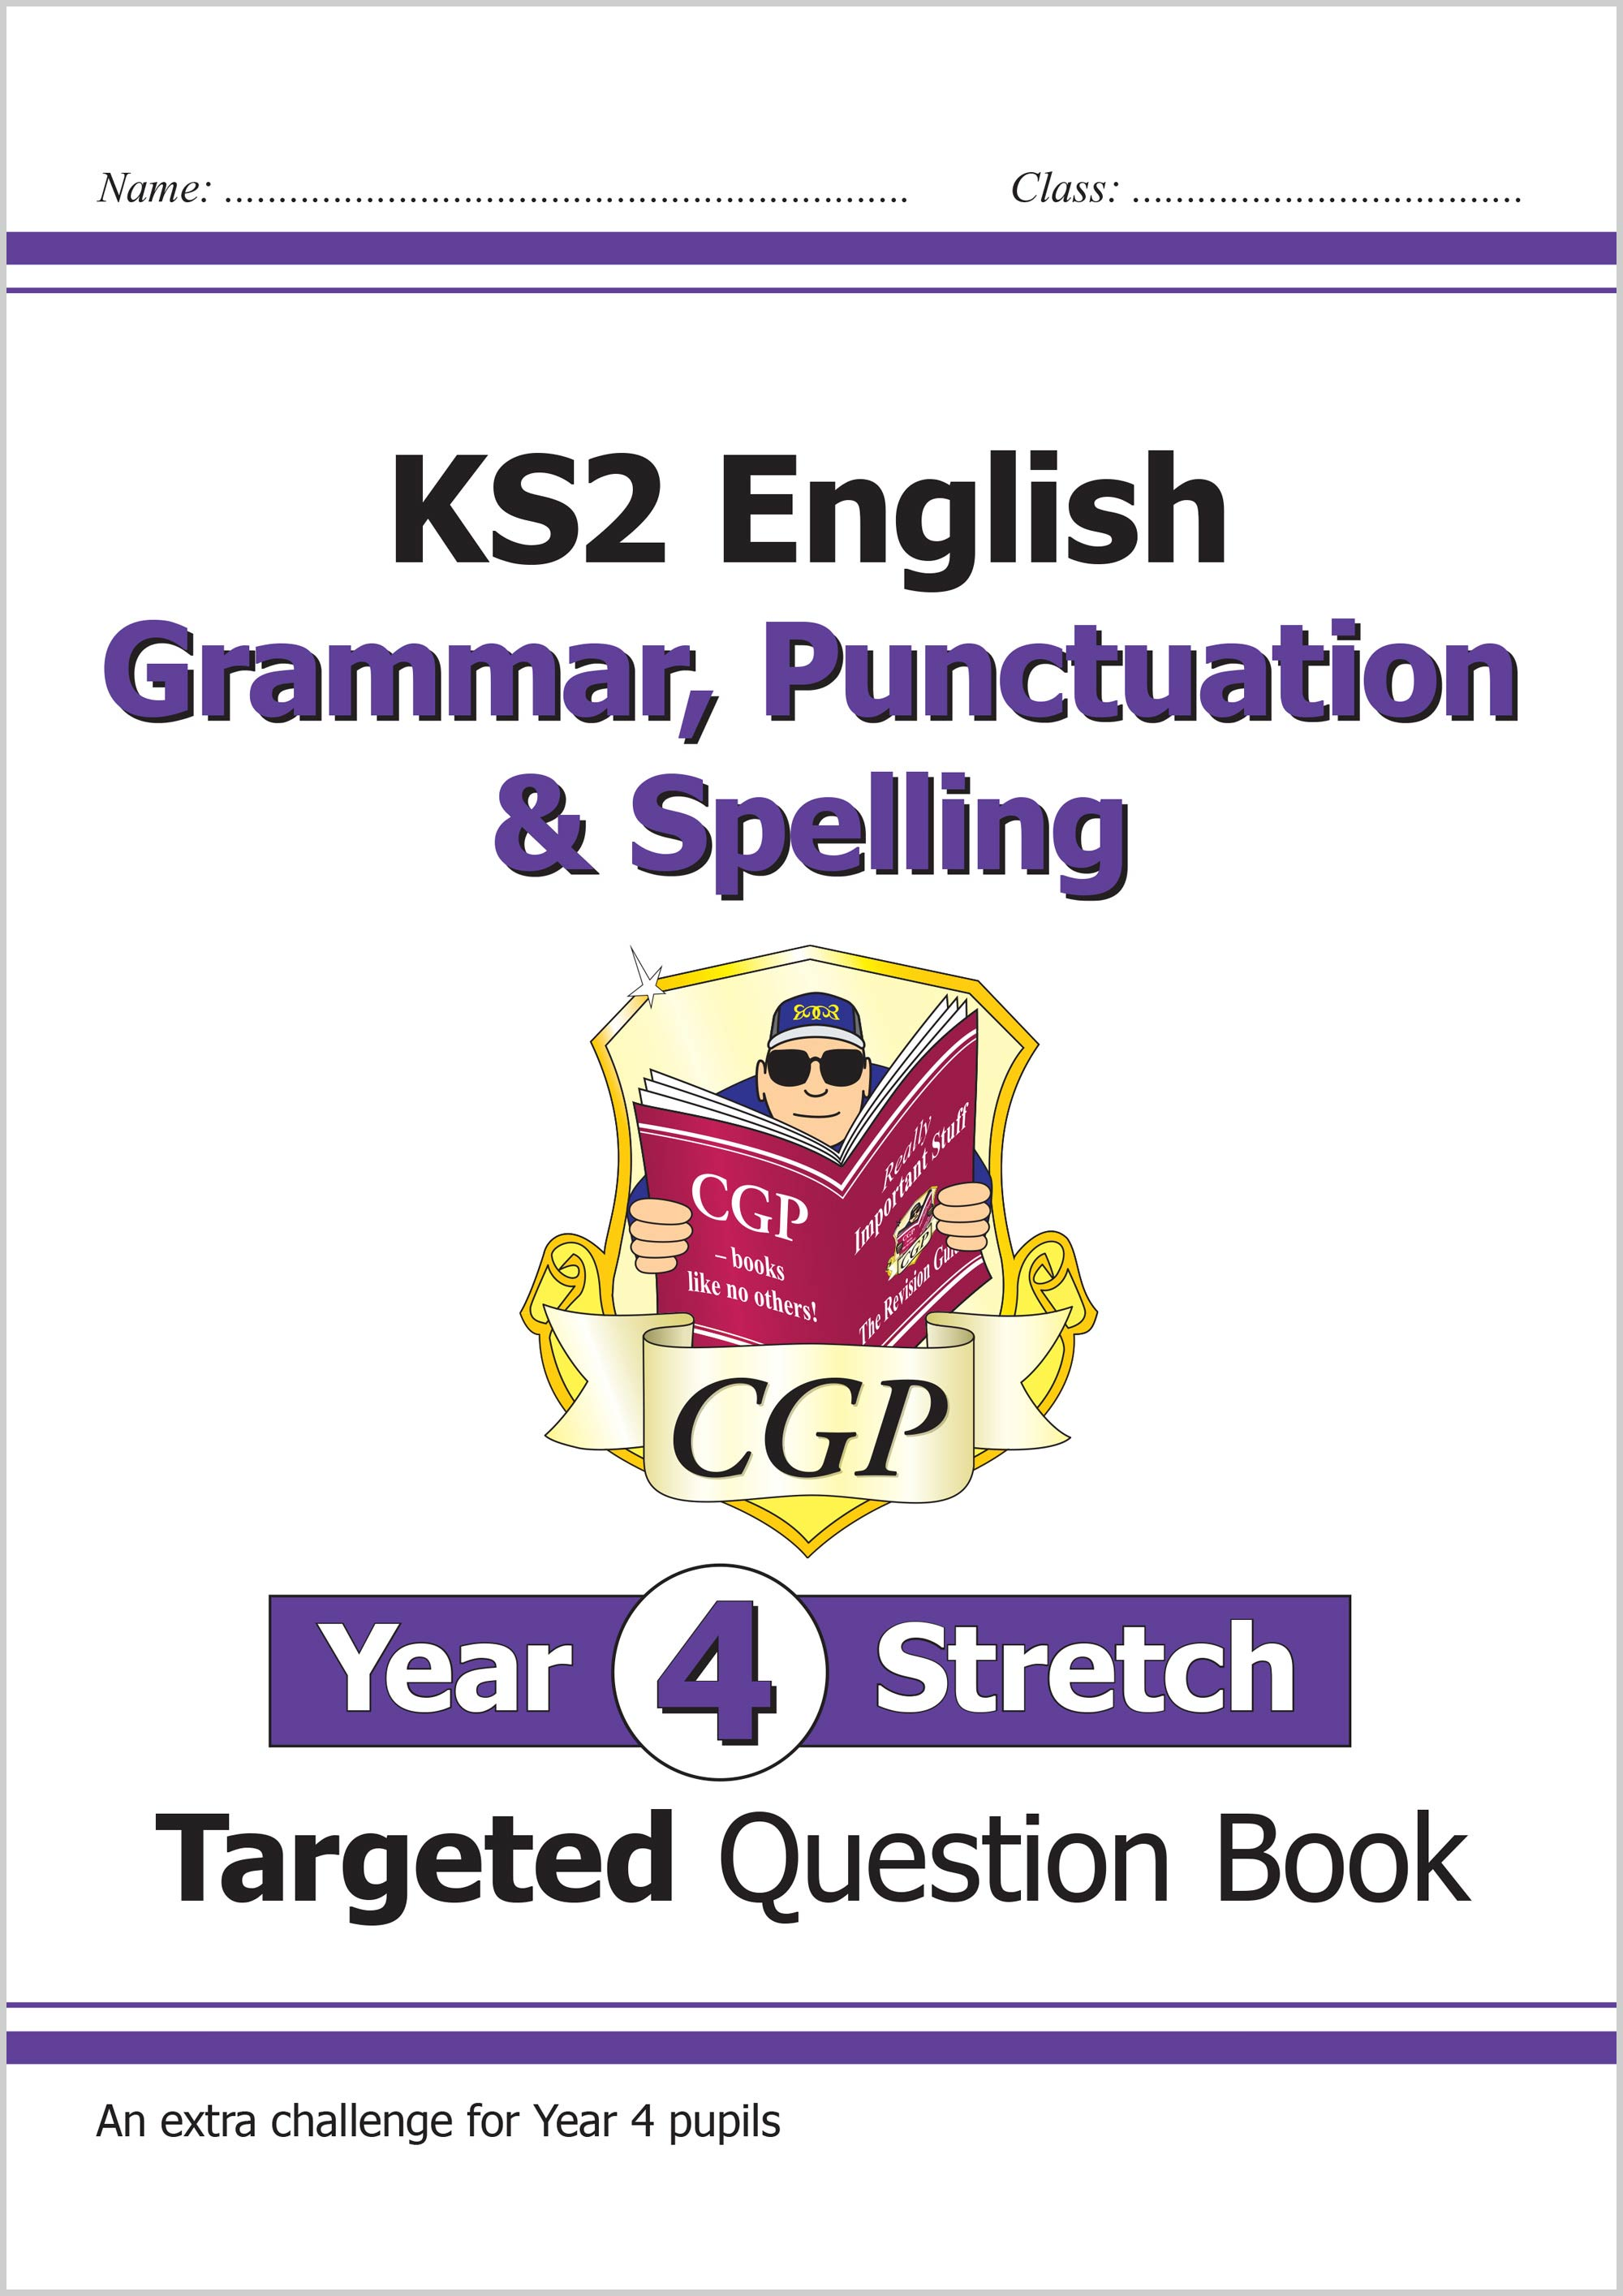 EG4HW21 - KS2 English Targeted Question Book: Challenging Grammar, Punctuation & Spelling - Year 4 S